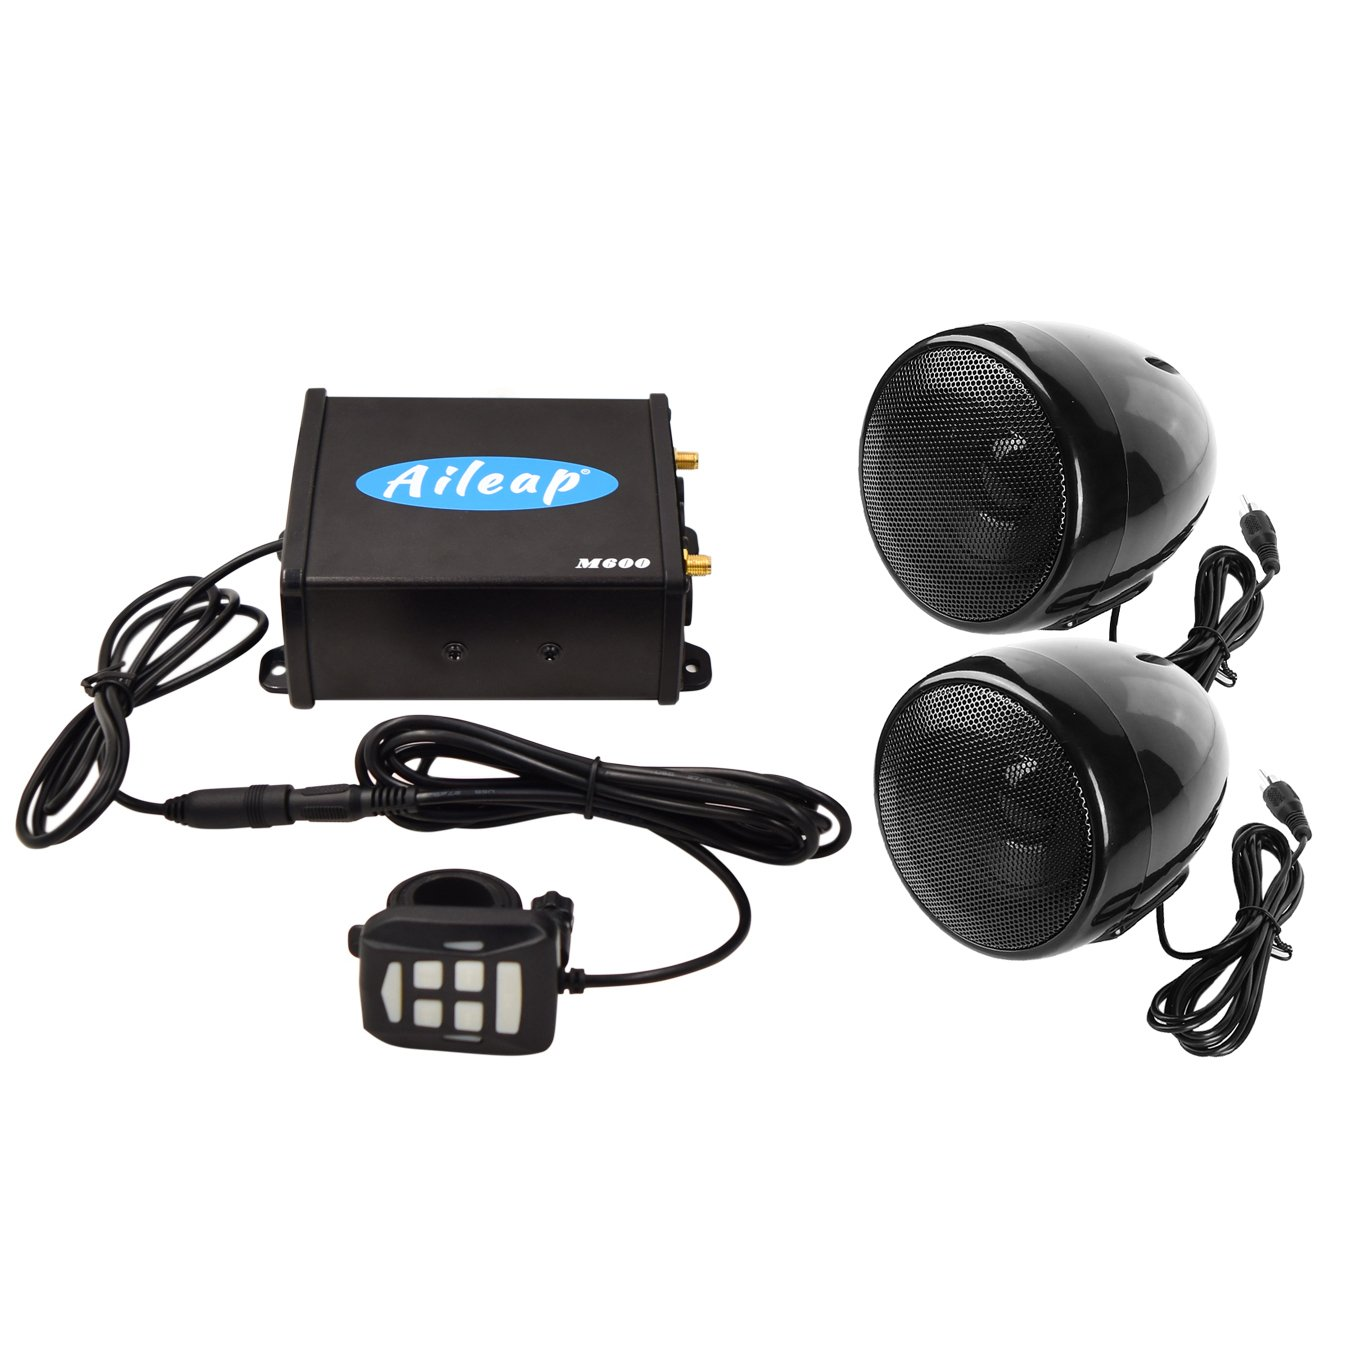 Aileap M600 Motorcycle/ATV/Boat Audio System with Bluetooth, FM Radio, Aux Input, One Pair of 3.5'' Weatherproof Speakers and Full Function Wired Control, Excellent Sound System for Riding by Aileap